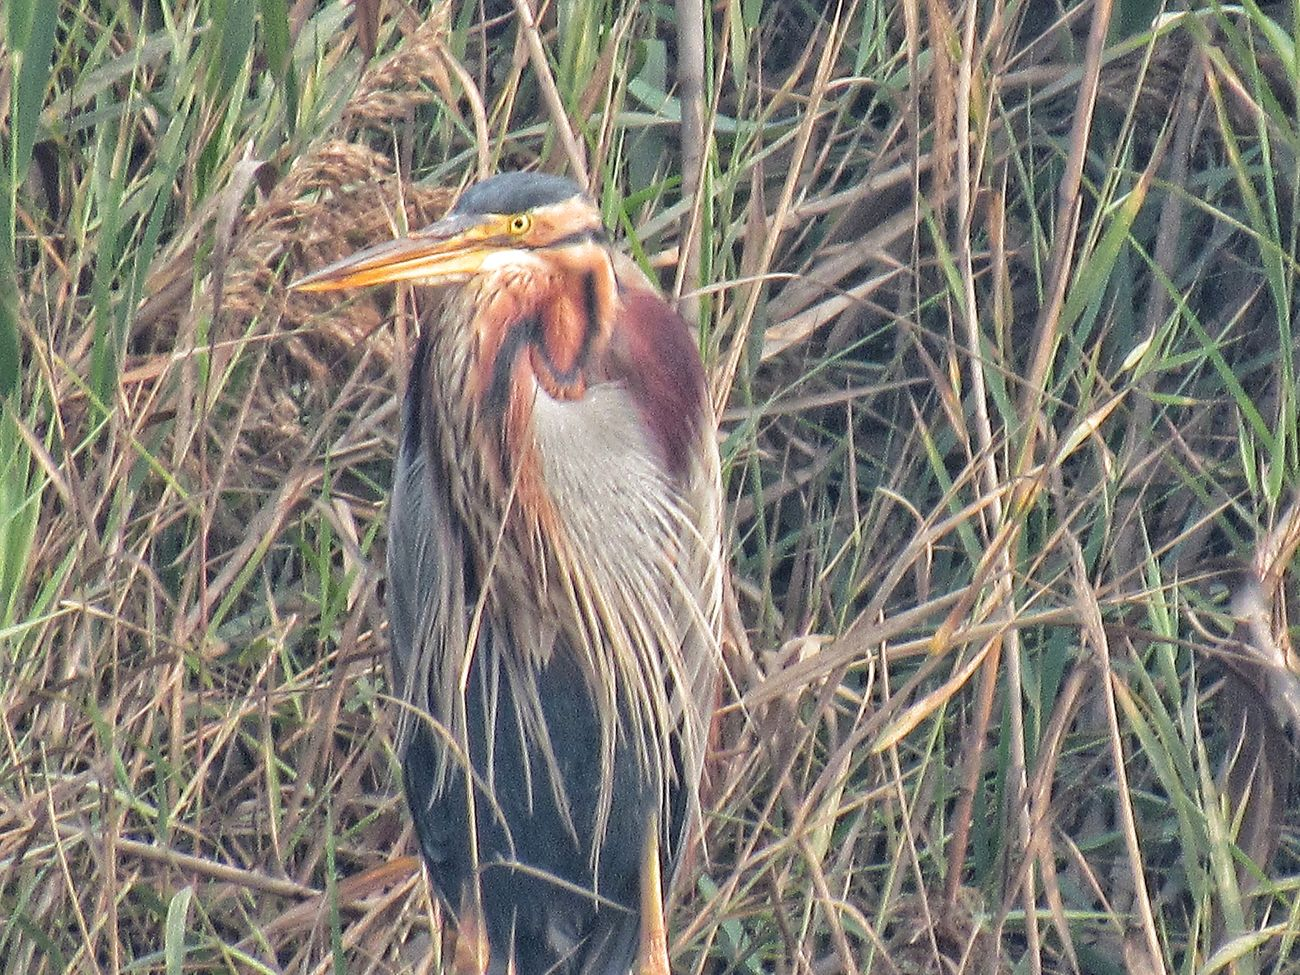 (+_+)Purple heron (+_+) biological name Ardea purpurea , these are migratory birds that come in indian winters for brooding . Animal Themes One Animal Bird Animals In The Wild Nature Day Animal Wildlife No People Grass Outdoors Close-up Mammal Purpleheron Migratory Birds Brooding Swamp